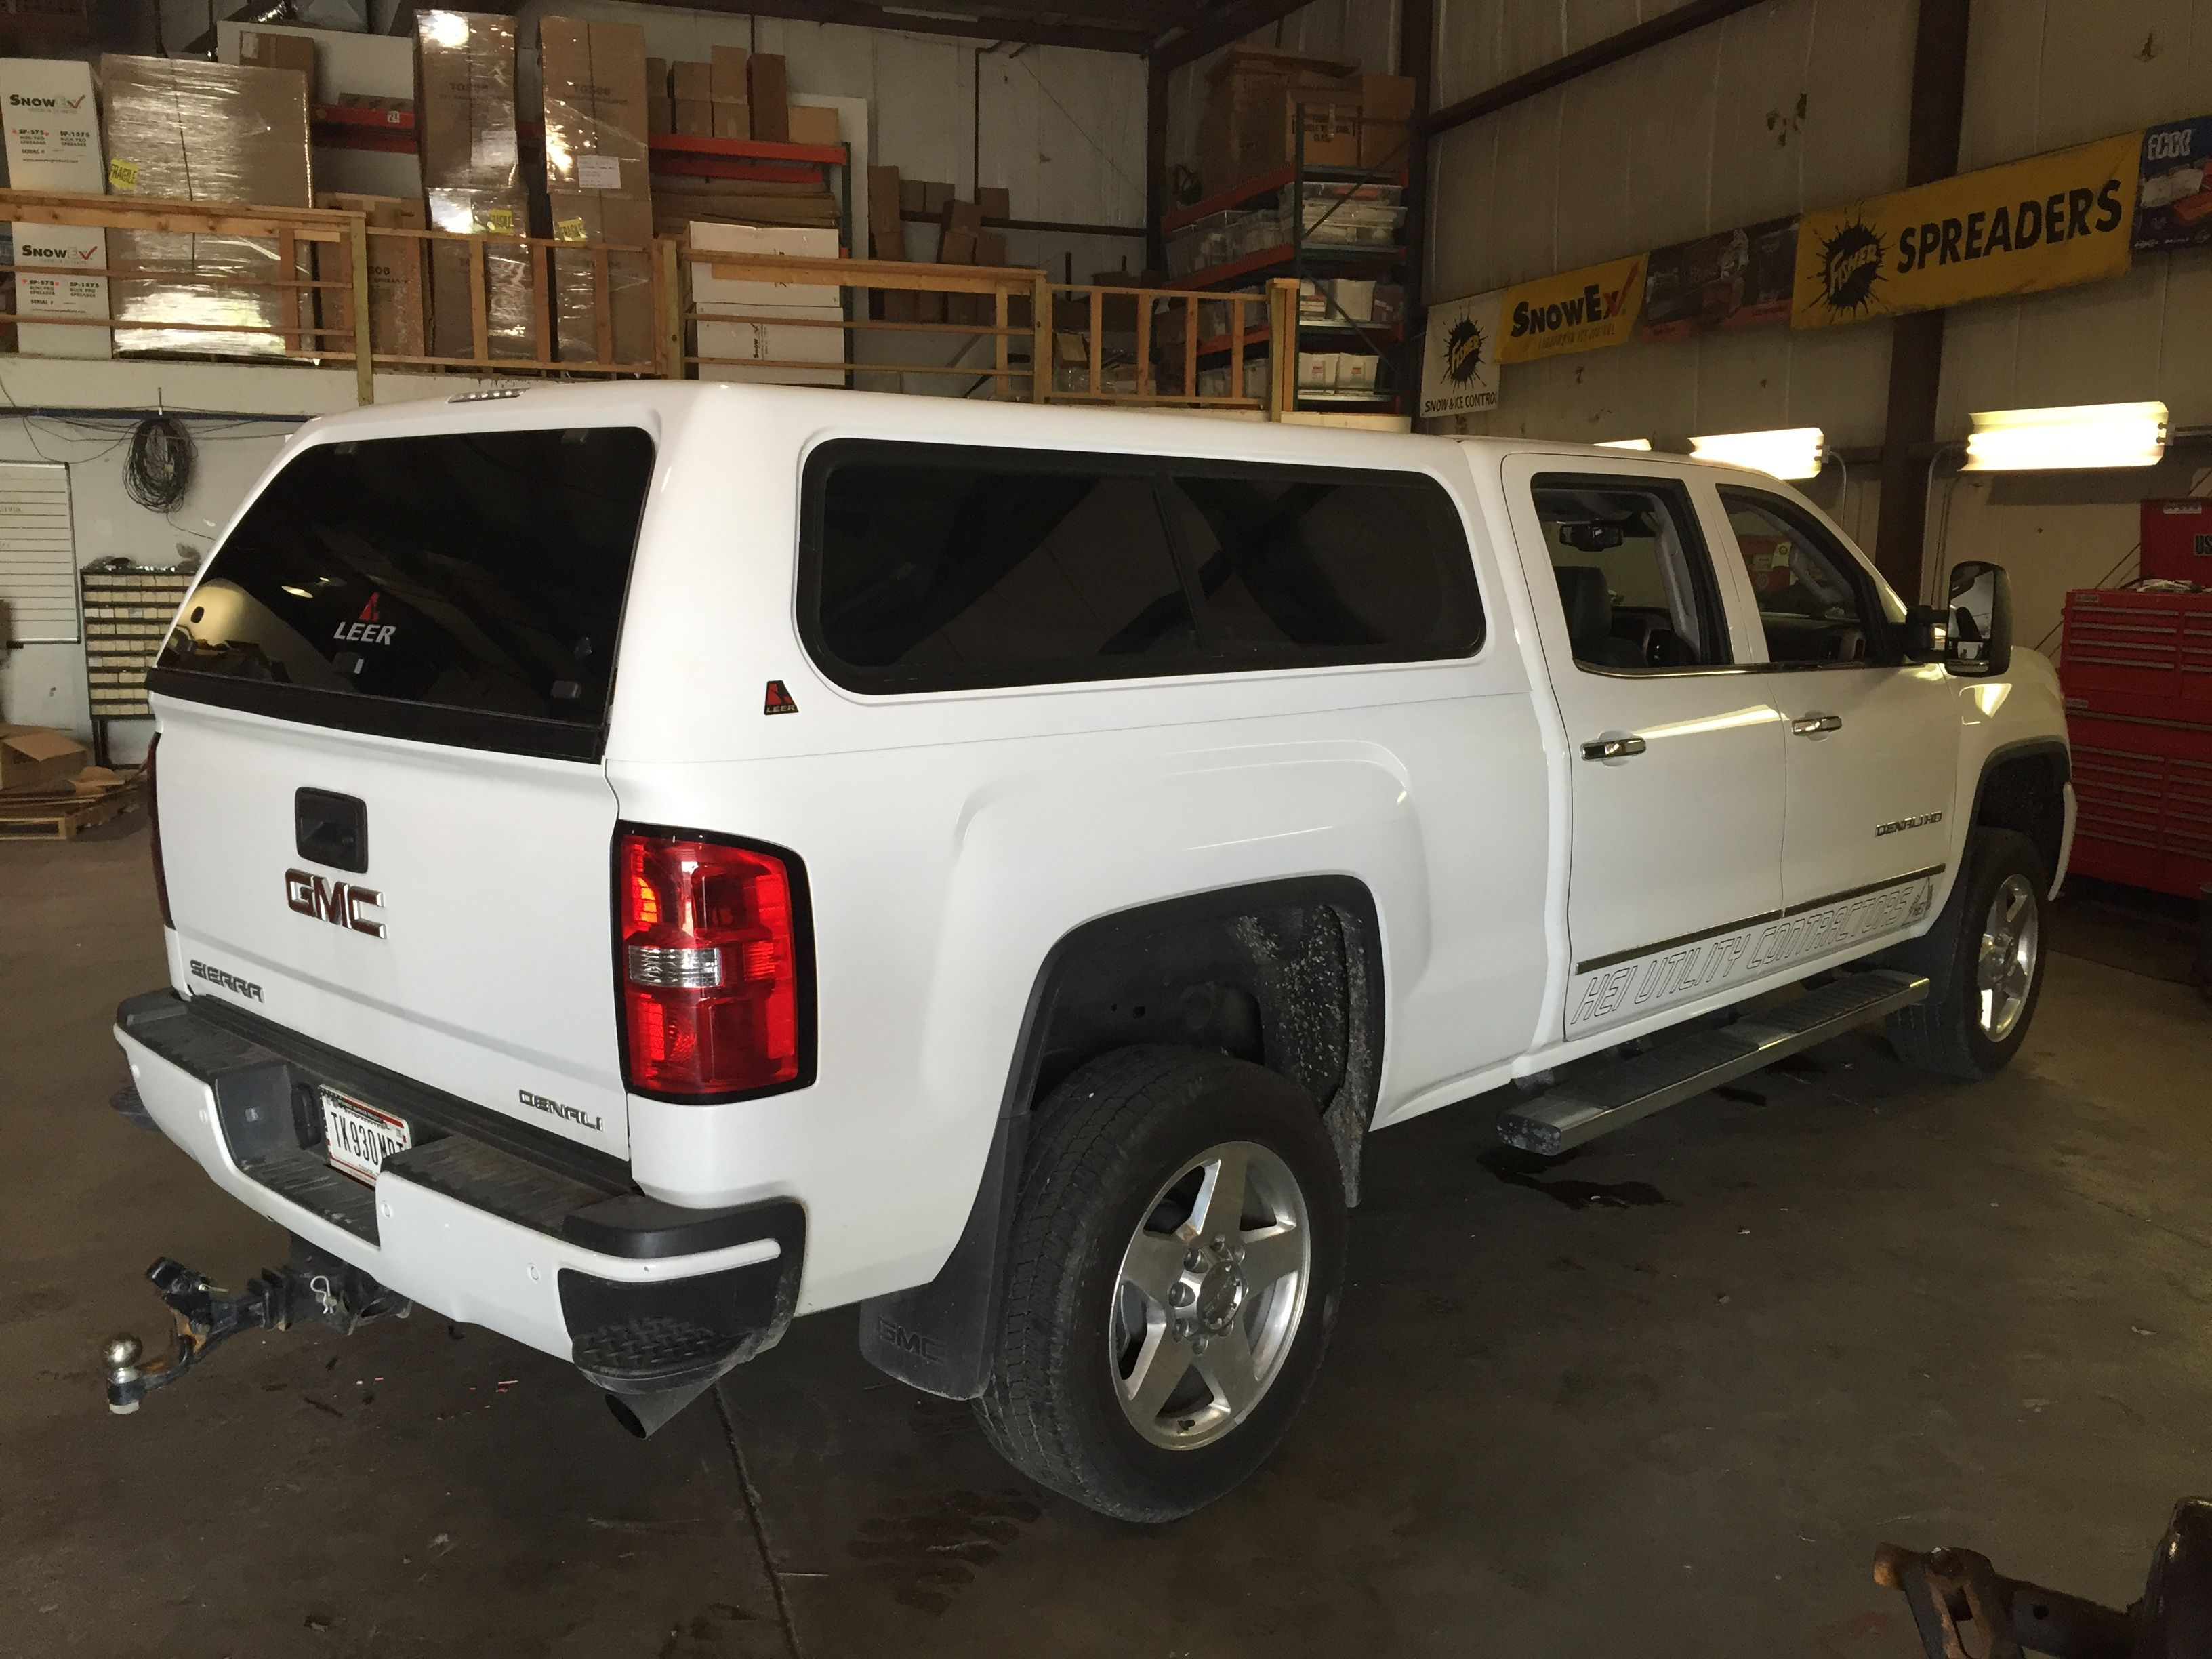 White Gmc Sierra Denali With Leer Truck Cap Installed At Cpw Truck